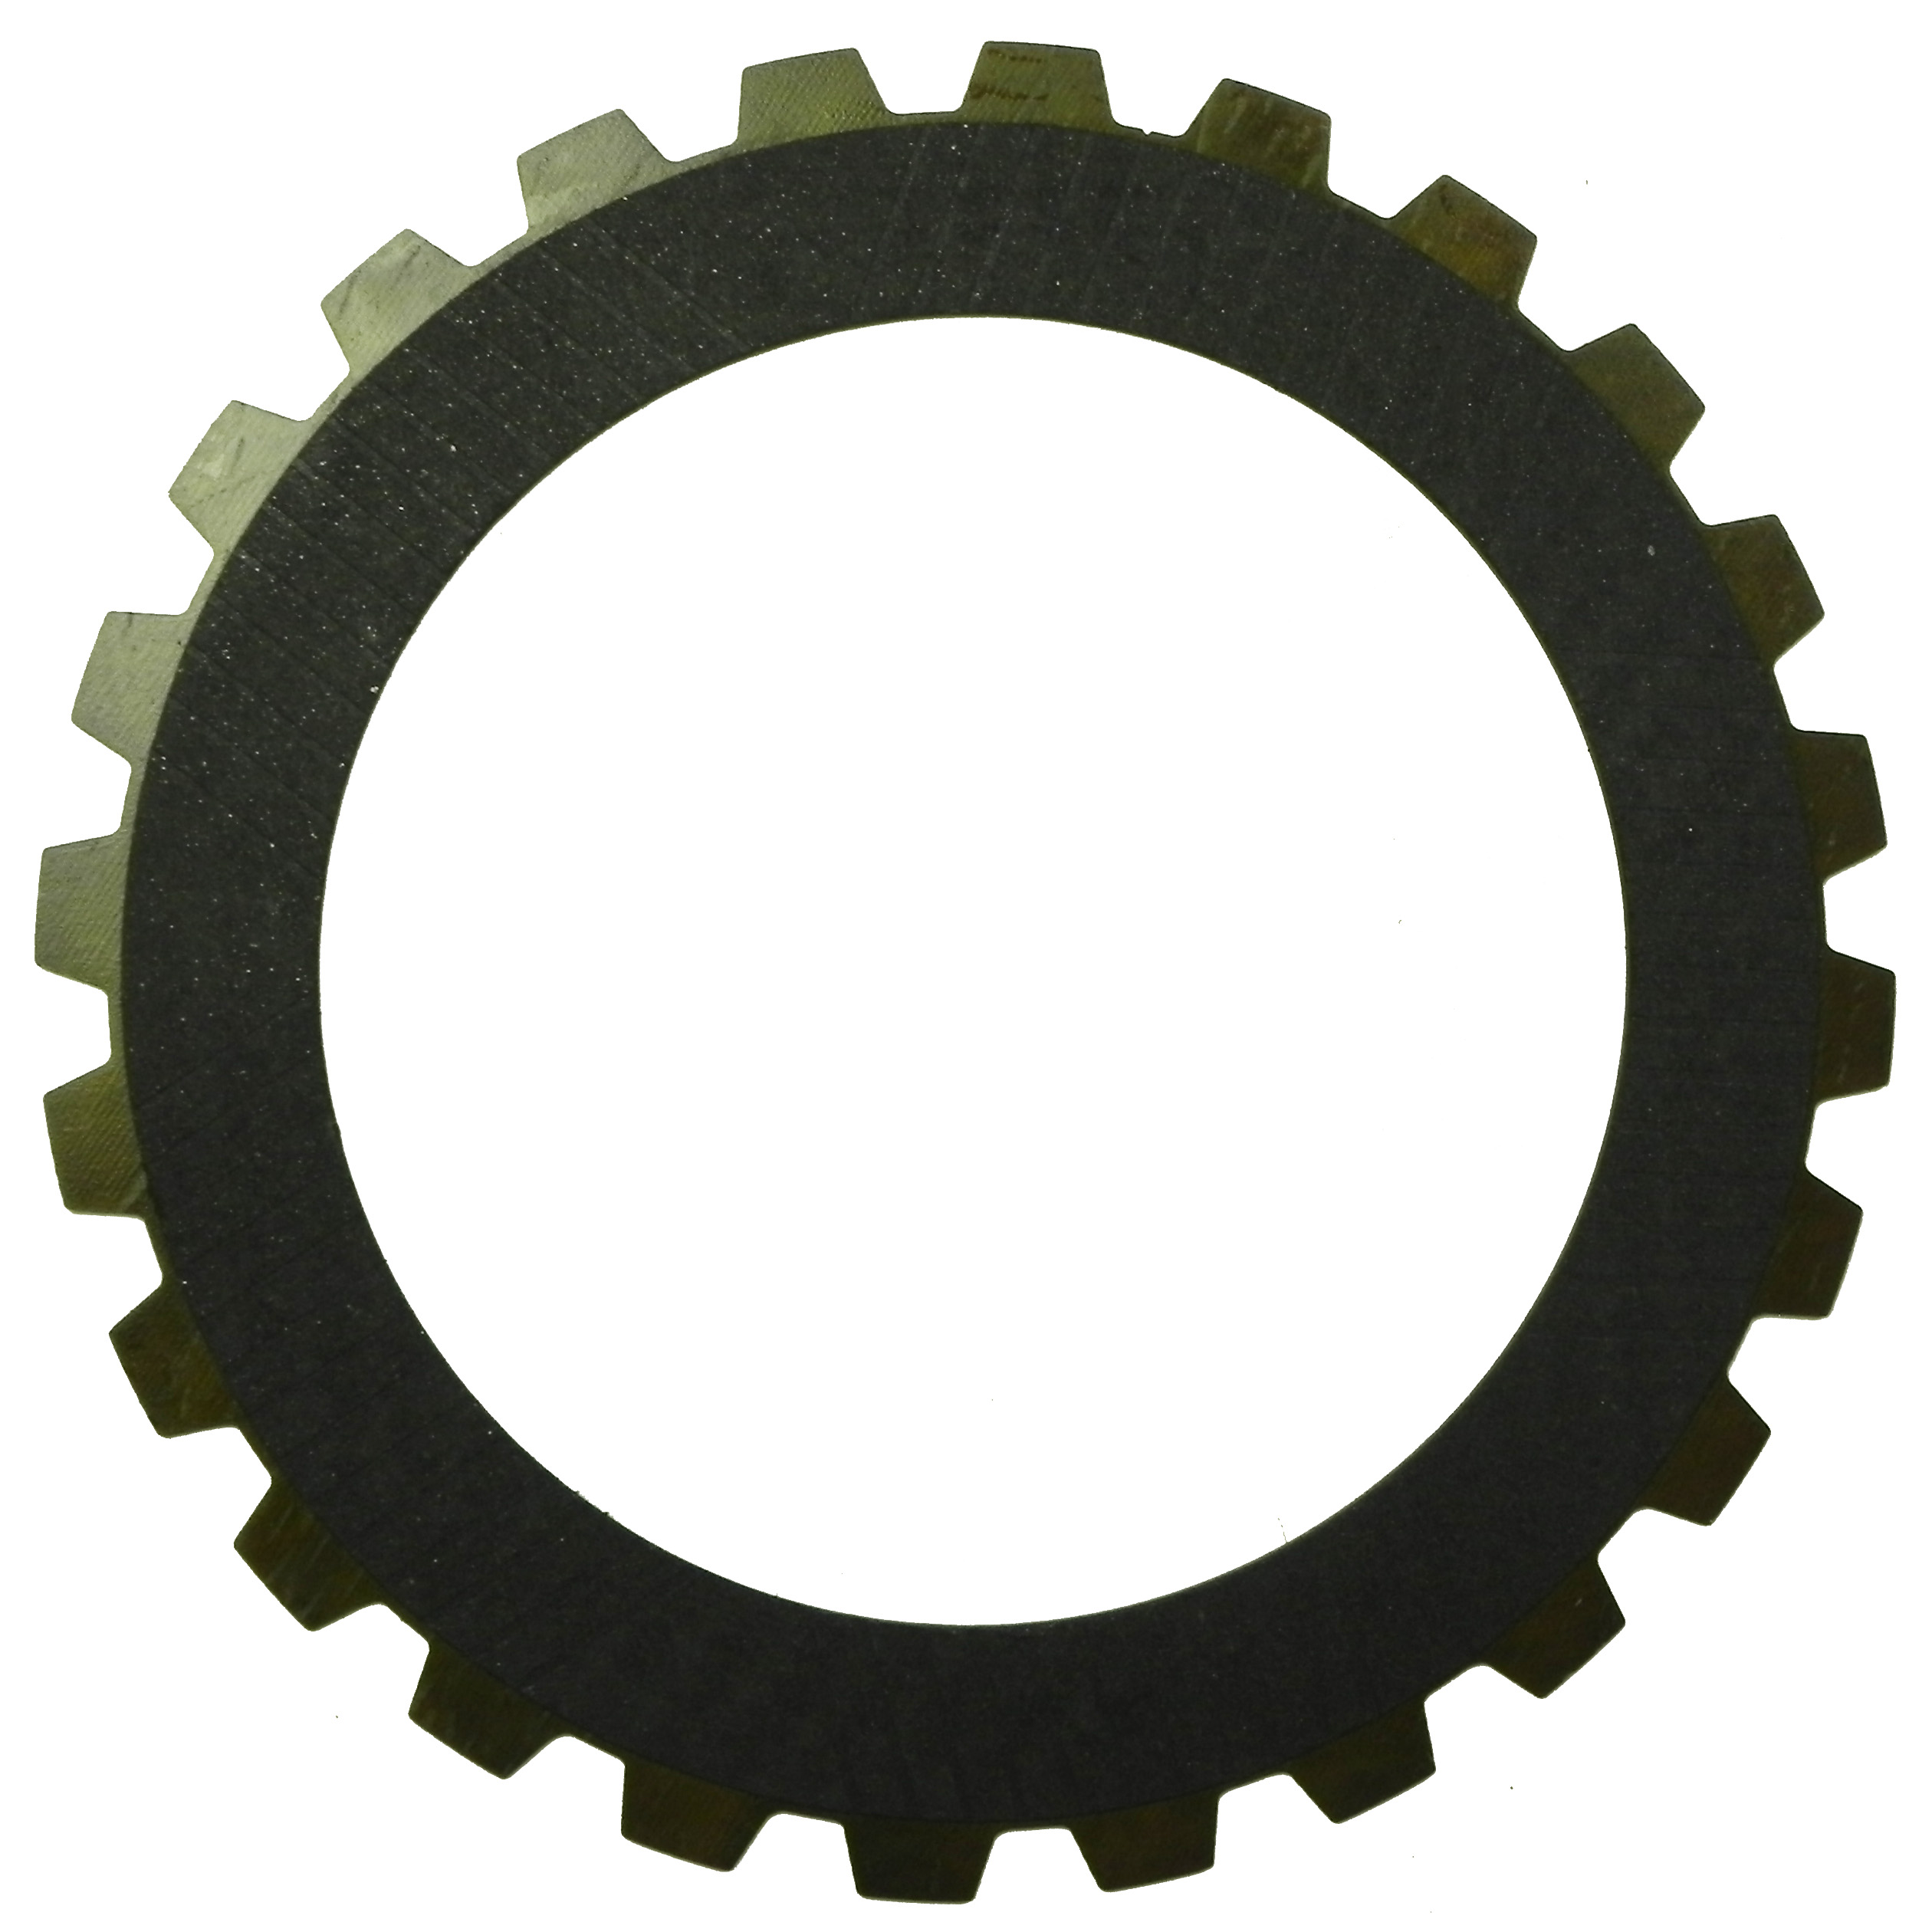 R574265 | 2004-ON Friction Clutch Plate High Energy C Brake, Single Sided, OD Spline High Energy